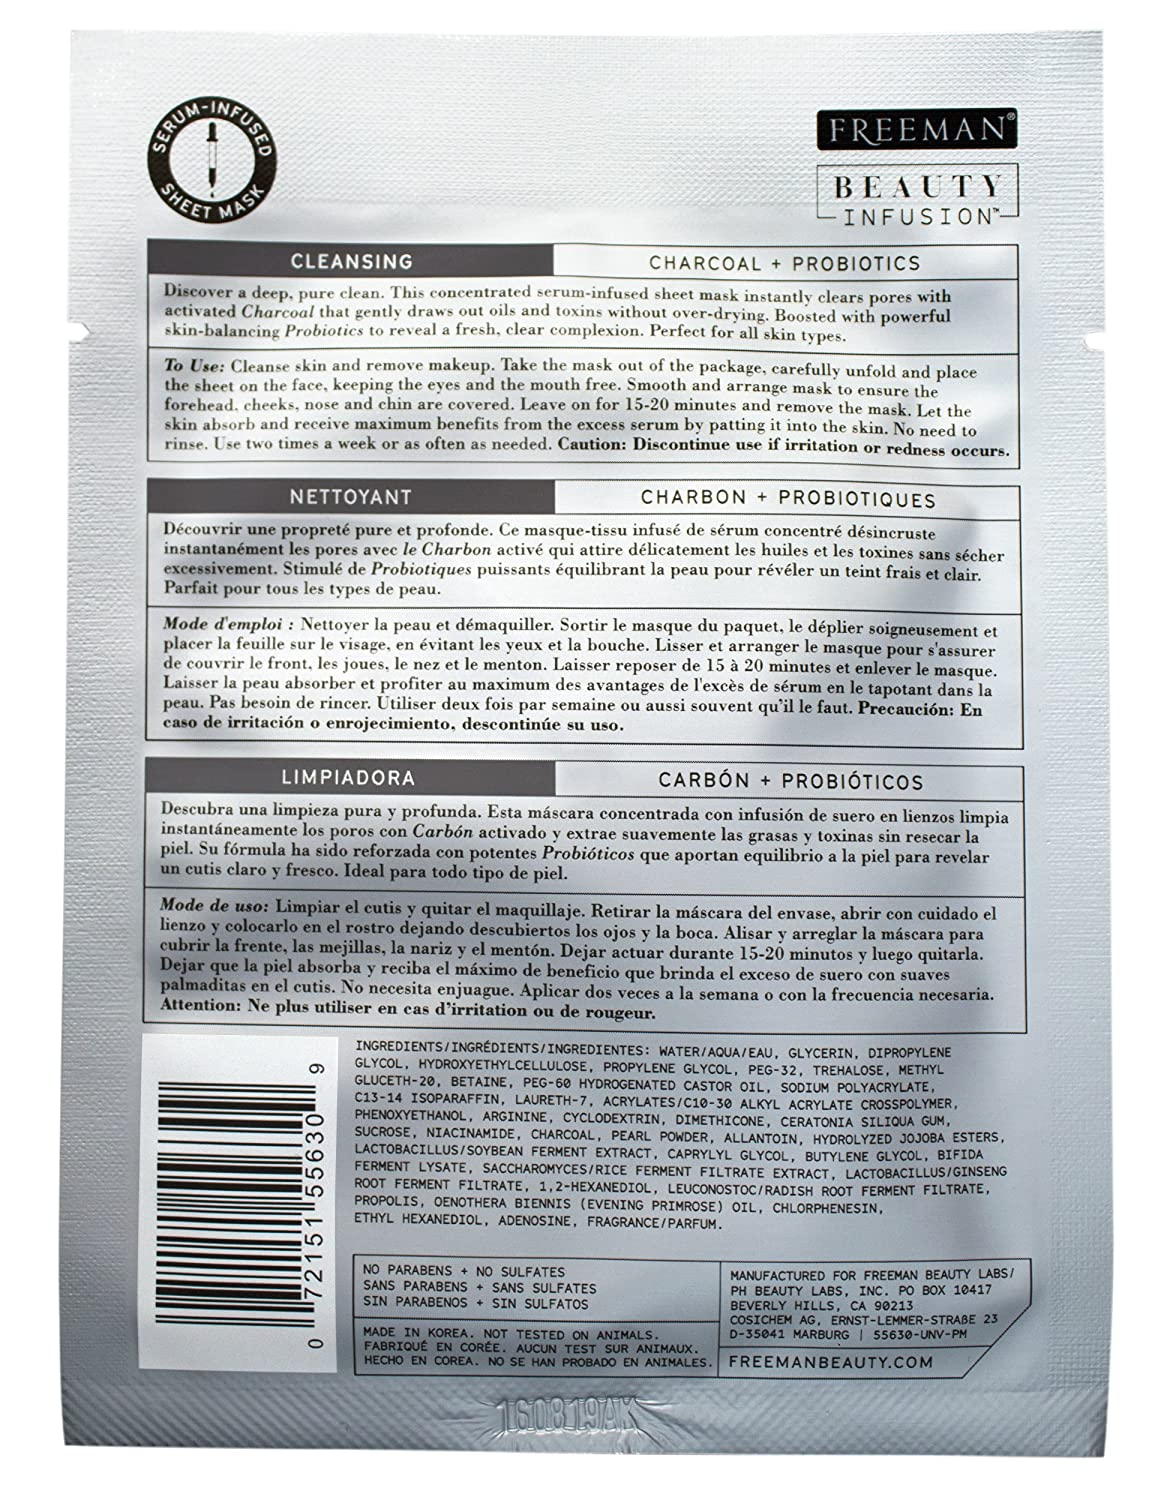 Amazon.com: Beauty Infusion Freeman, Brightening Hibiscus + Vitamin C overnight Mask, 6 Count: Beauty